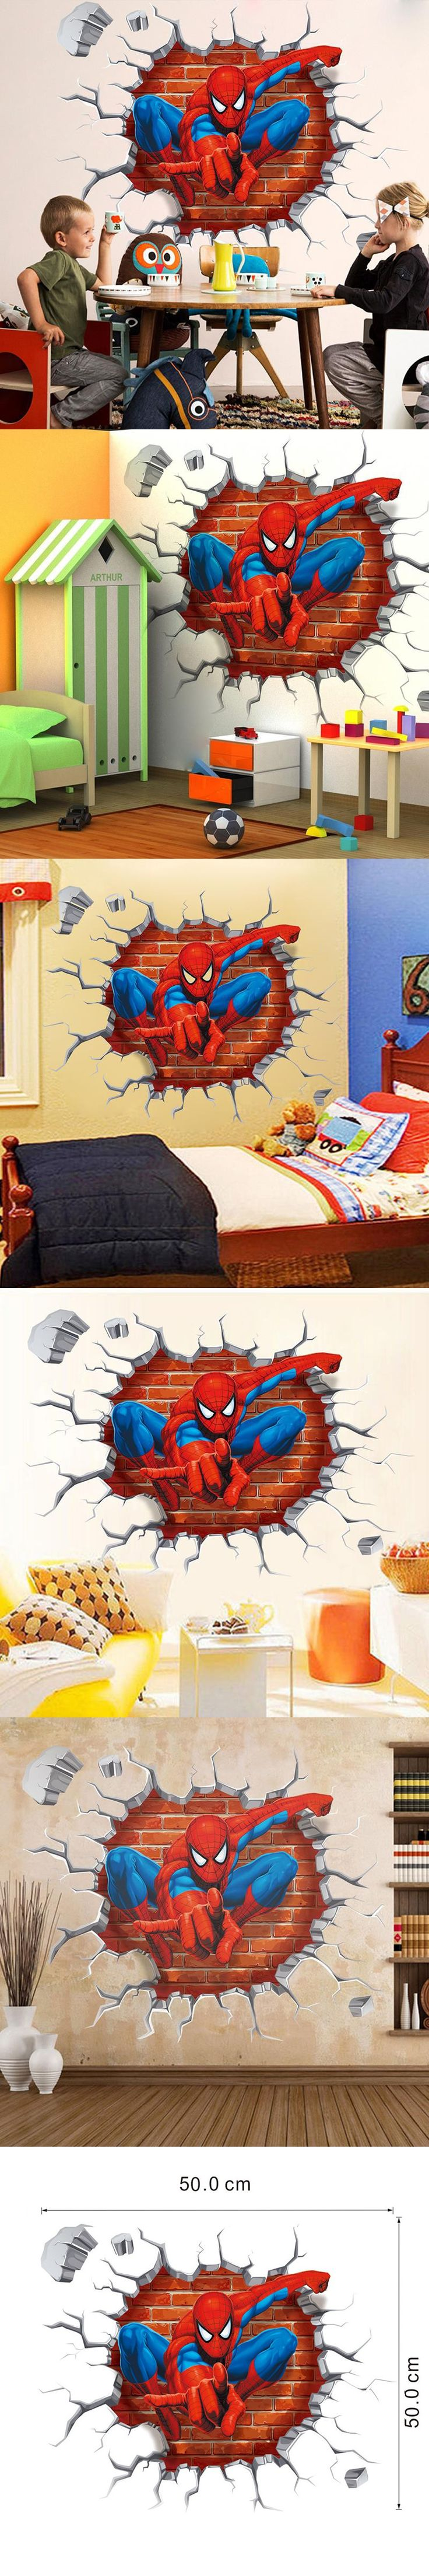 3d Cartoon Spiderman wall stickers for kids rooms home decor Kids Nursery Wall Decals Home decoration Boy room gift Wallpaper $5.5